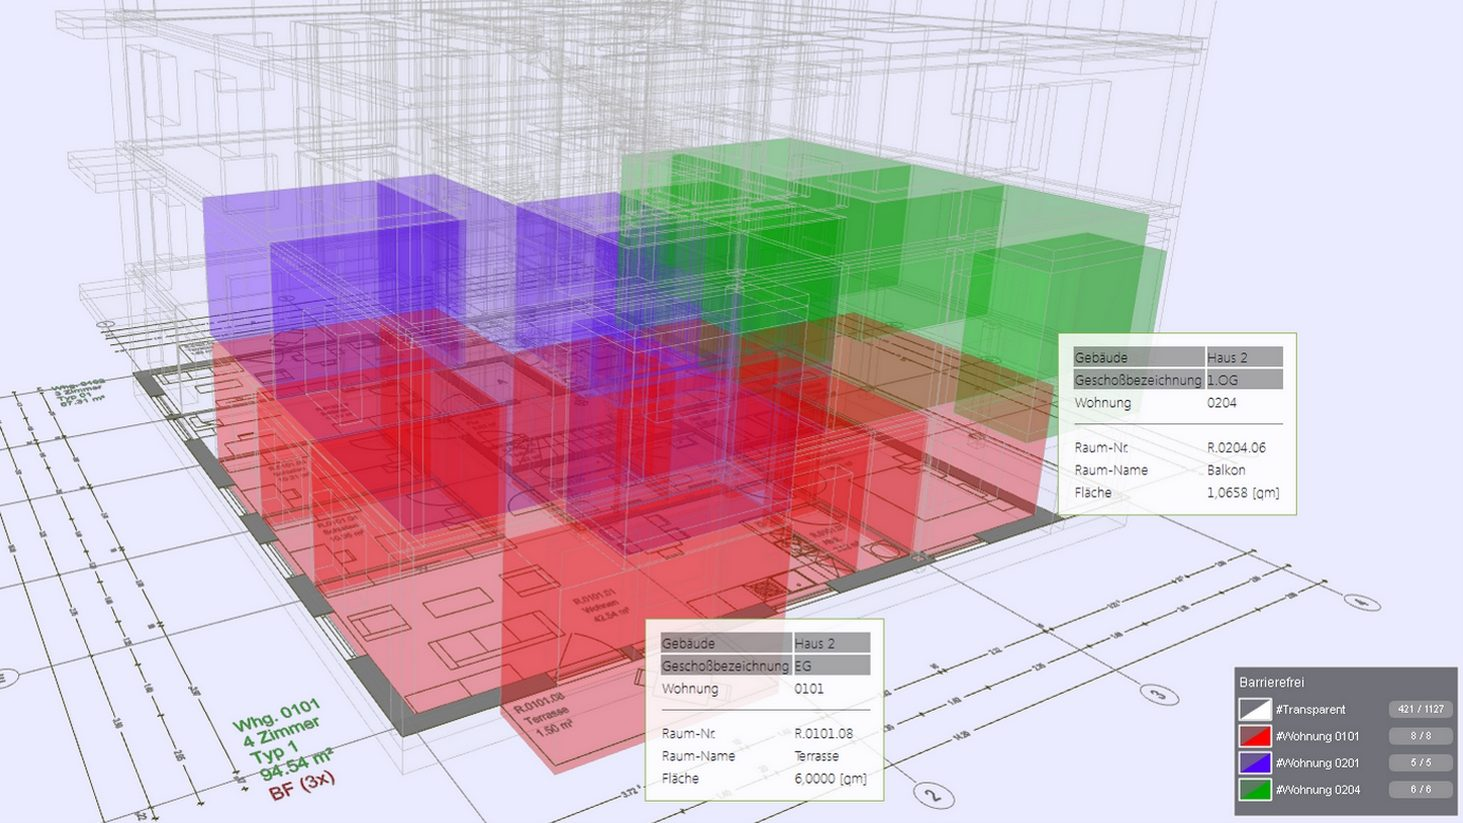 Building Information Modeling als Chance